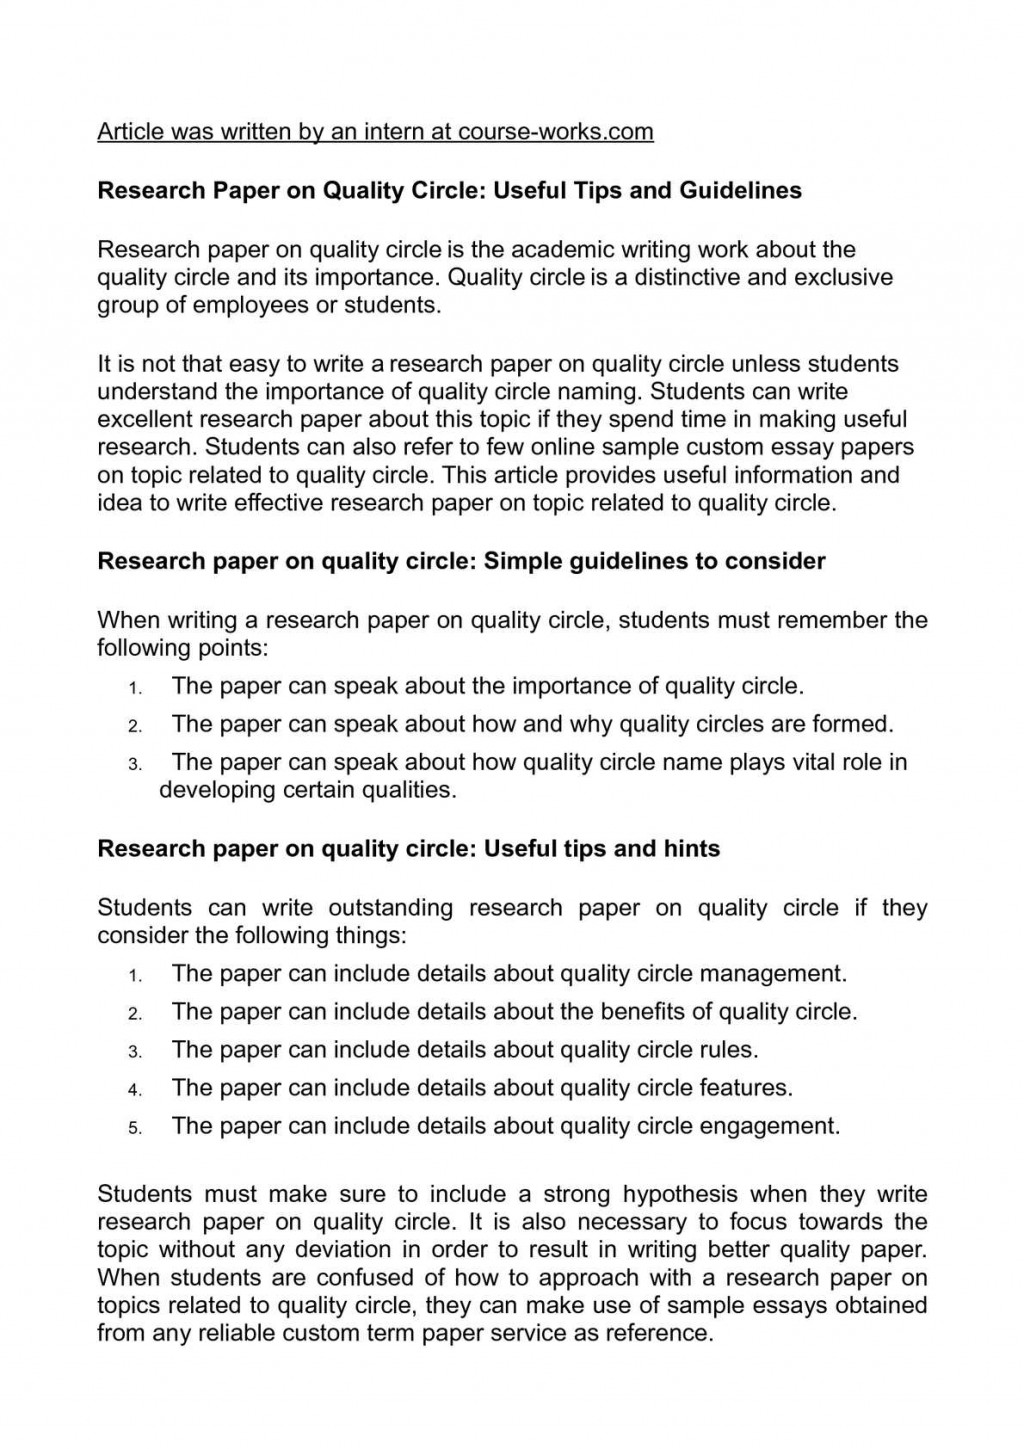 008 P1 Research Paper Wonderful Written Buy Pre Papers For Sale Free Large